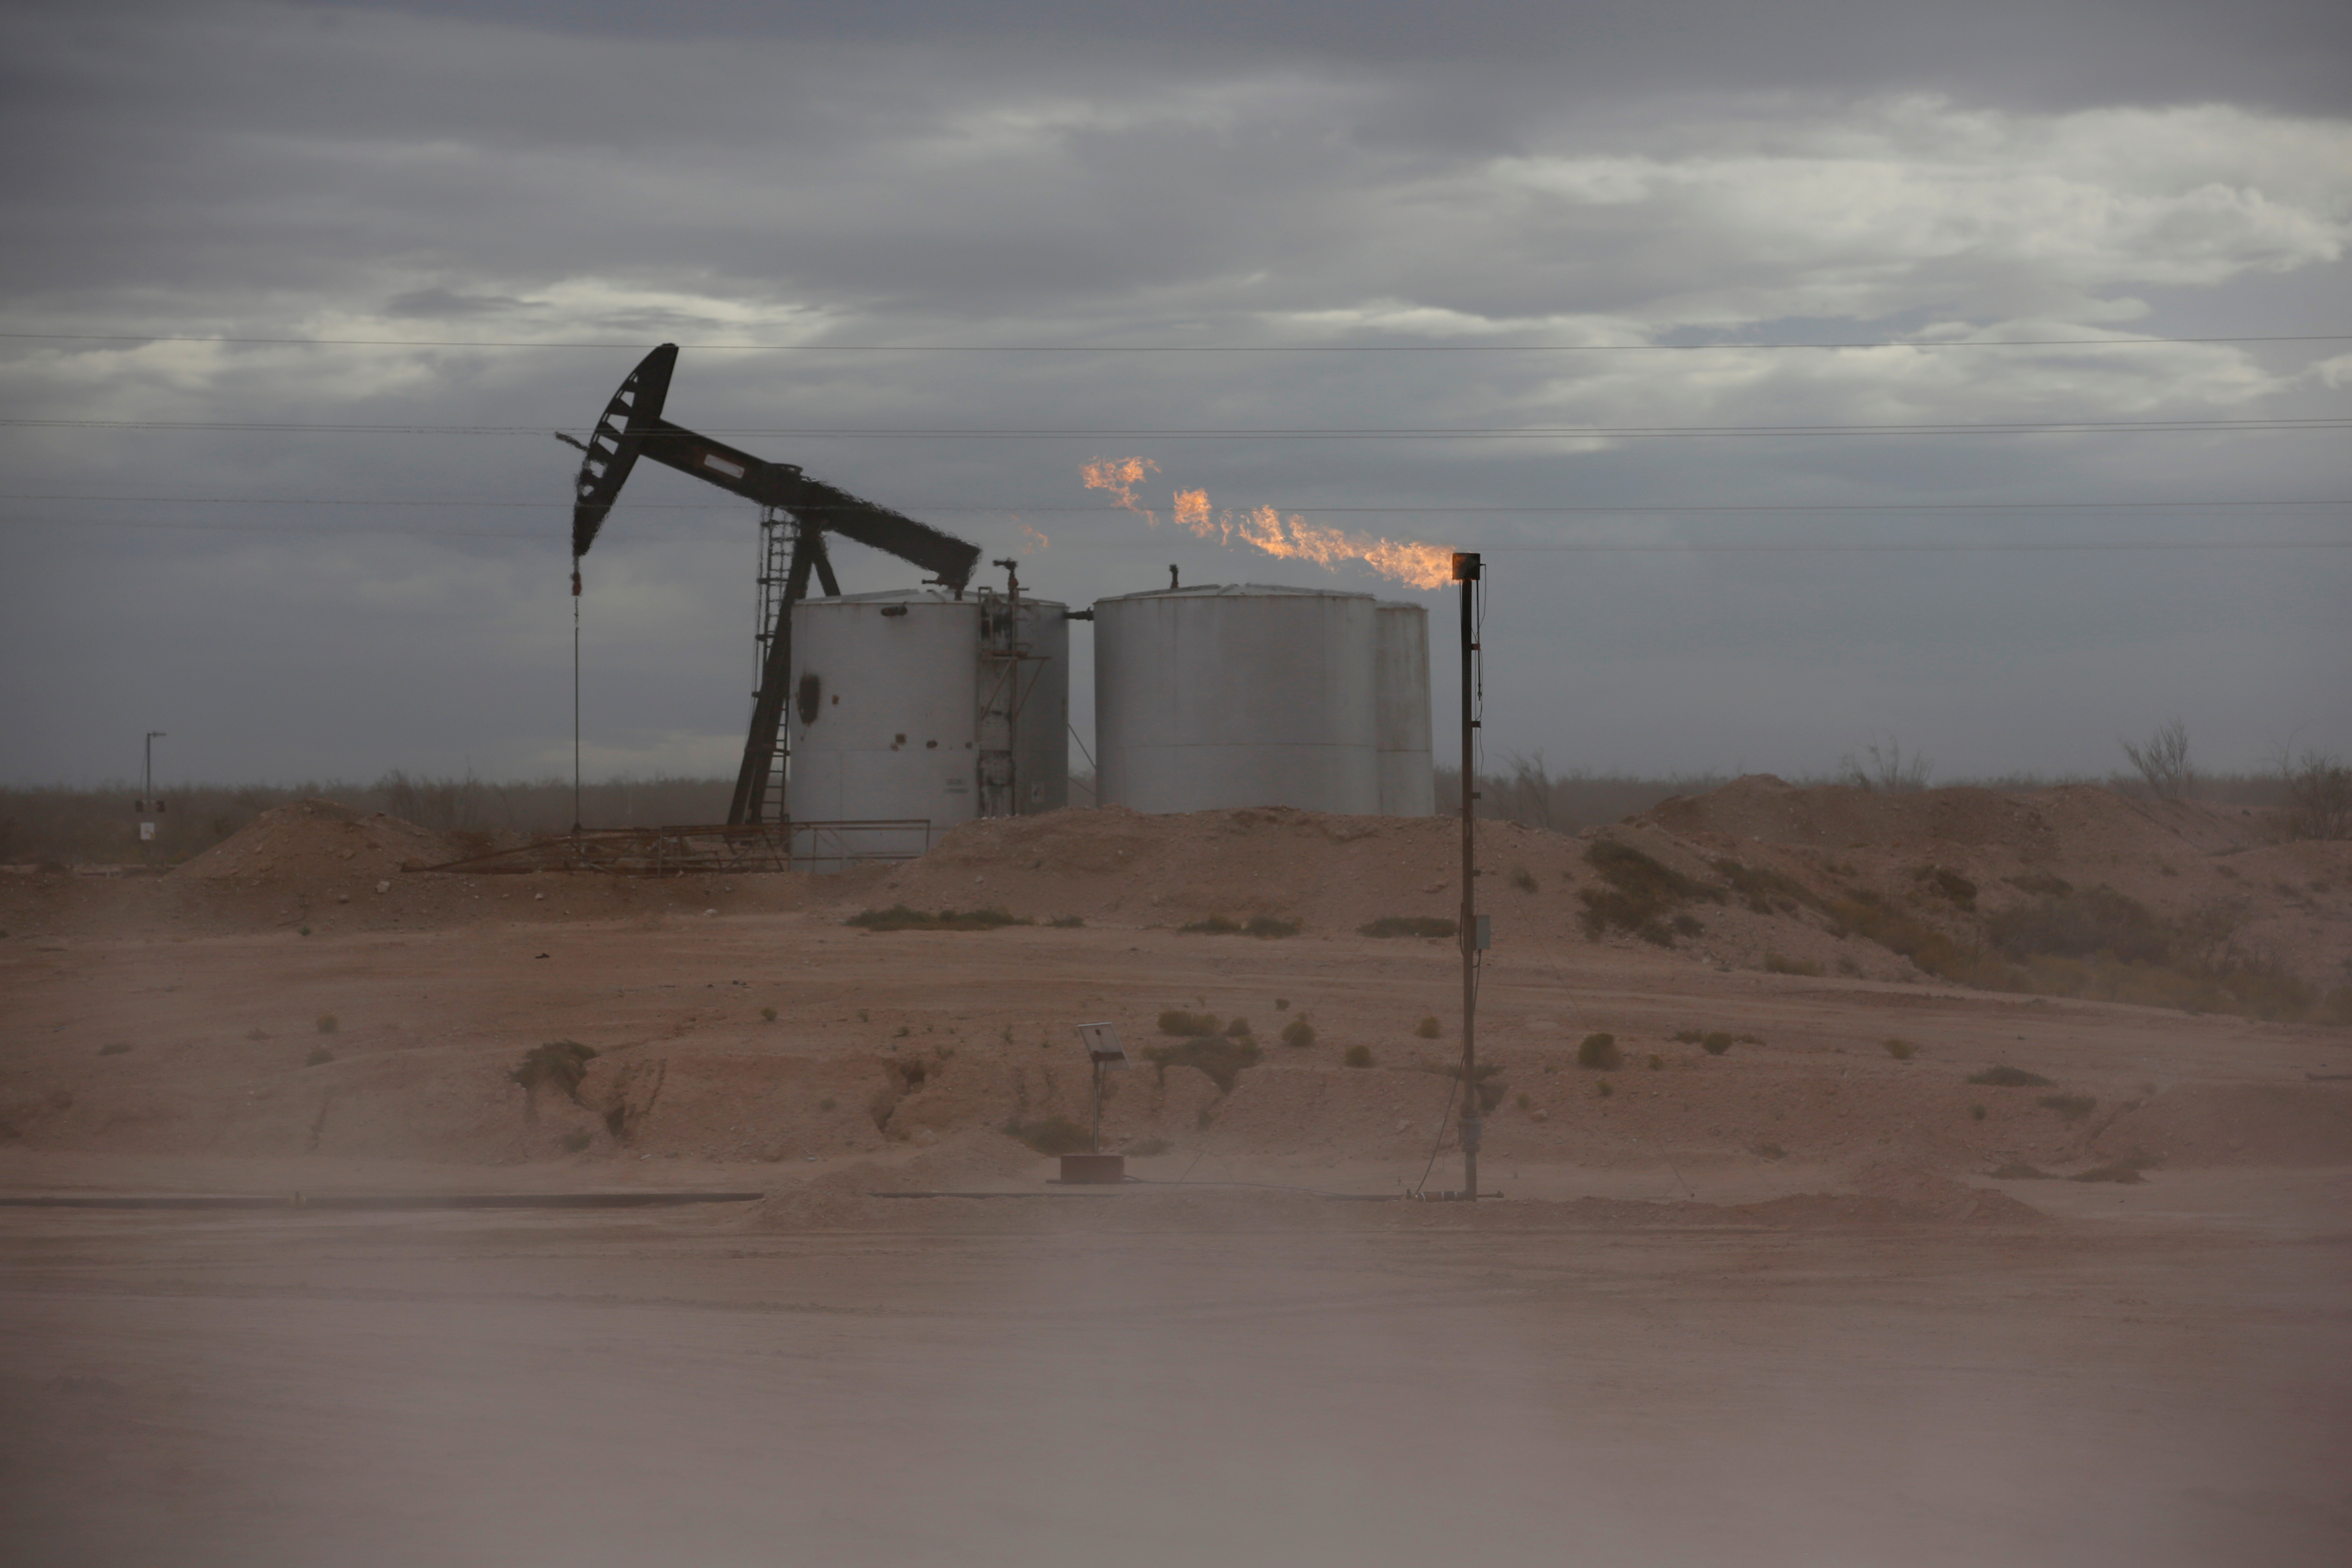 Dust blows around a crude oil pump jack and flare burning excess gas at a drill pad in the Permian Basin in Loving County, Texas, U.S. November 25, 2019. REUTERS/Angus Mordant/File Photo